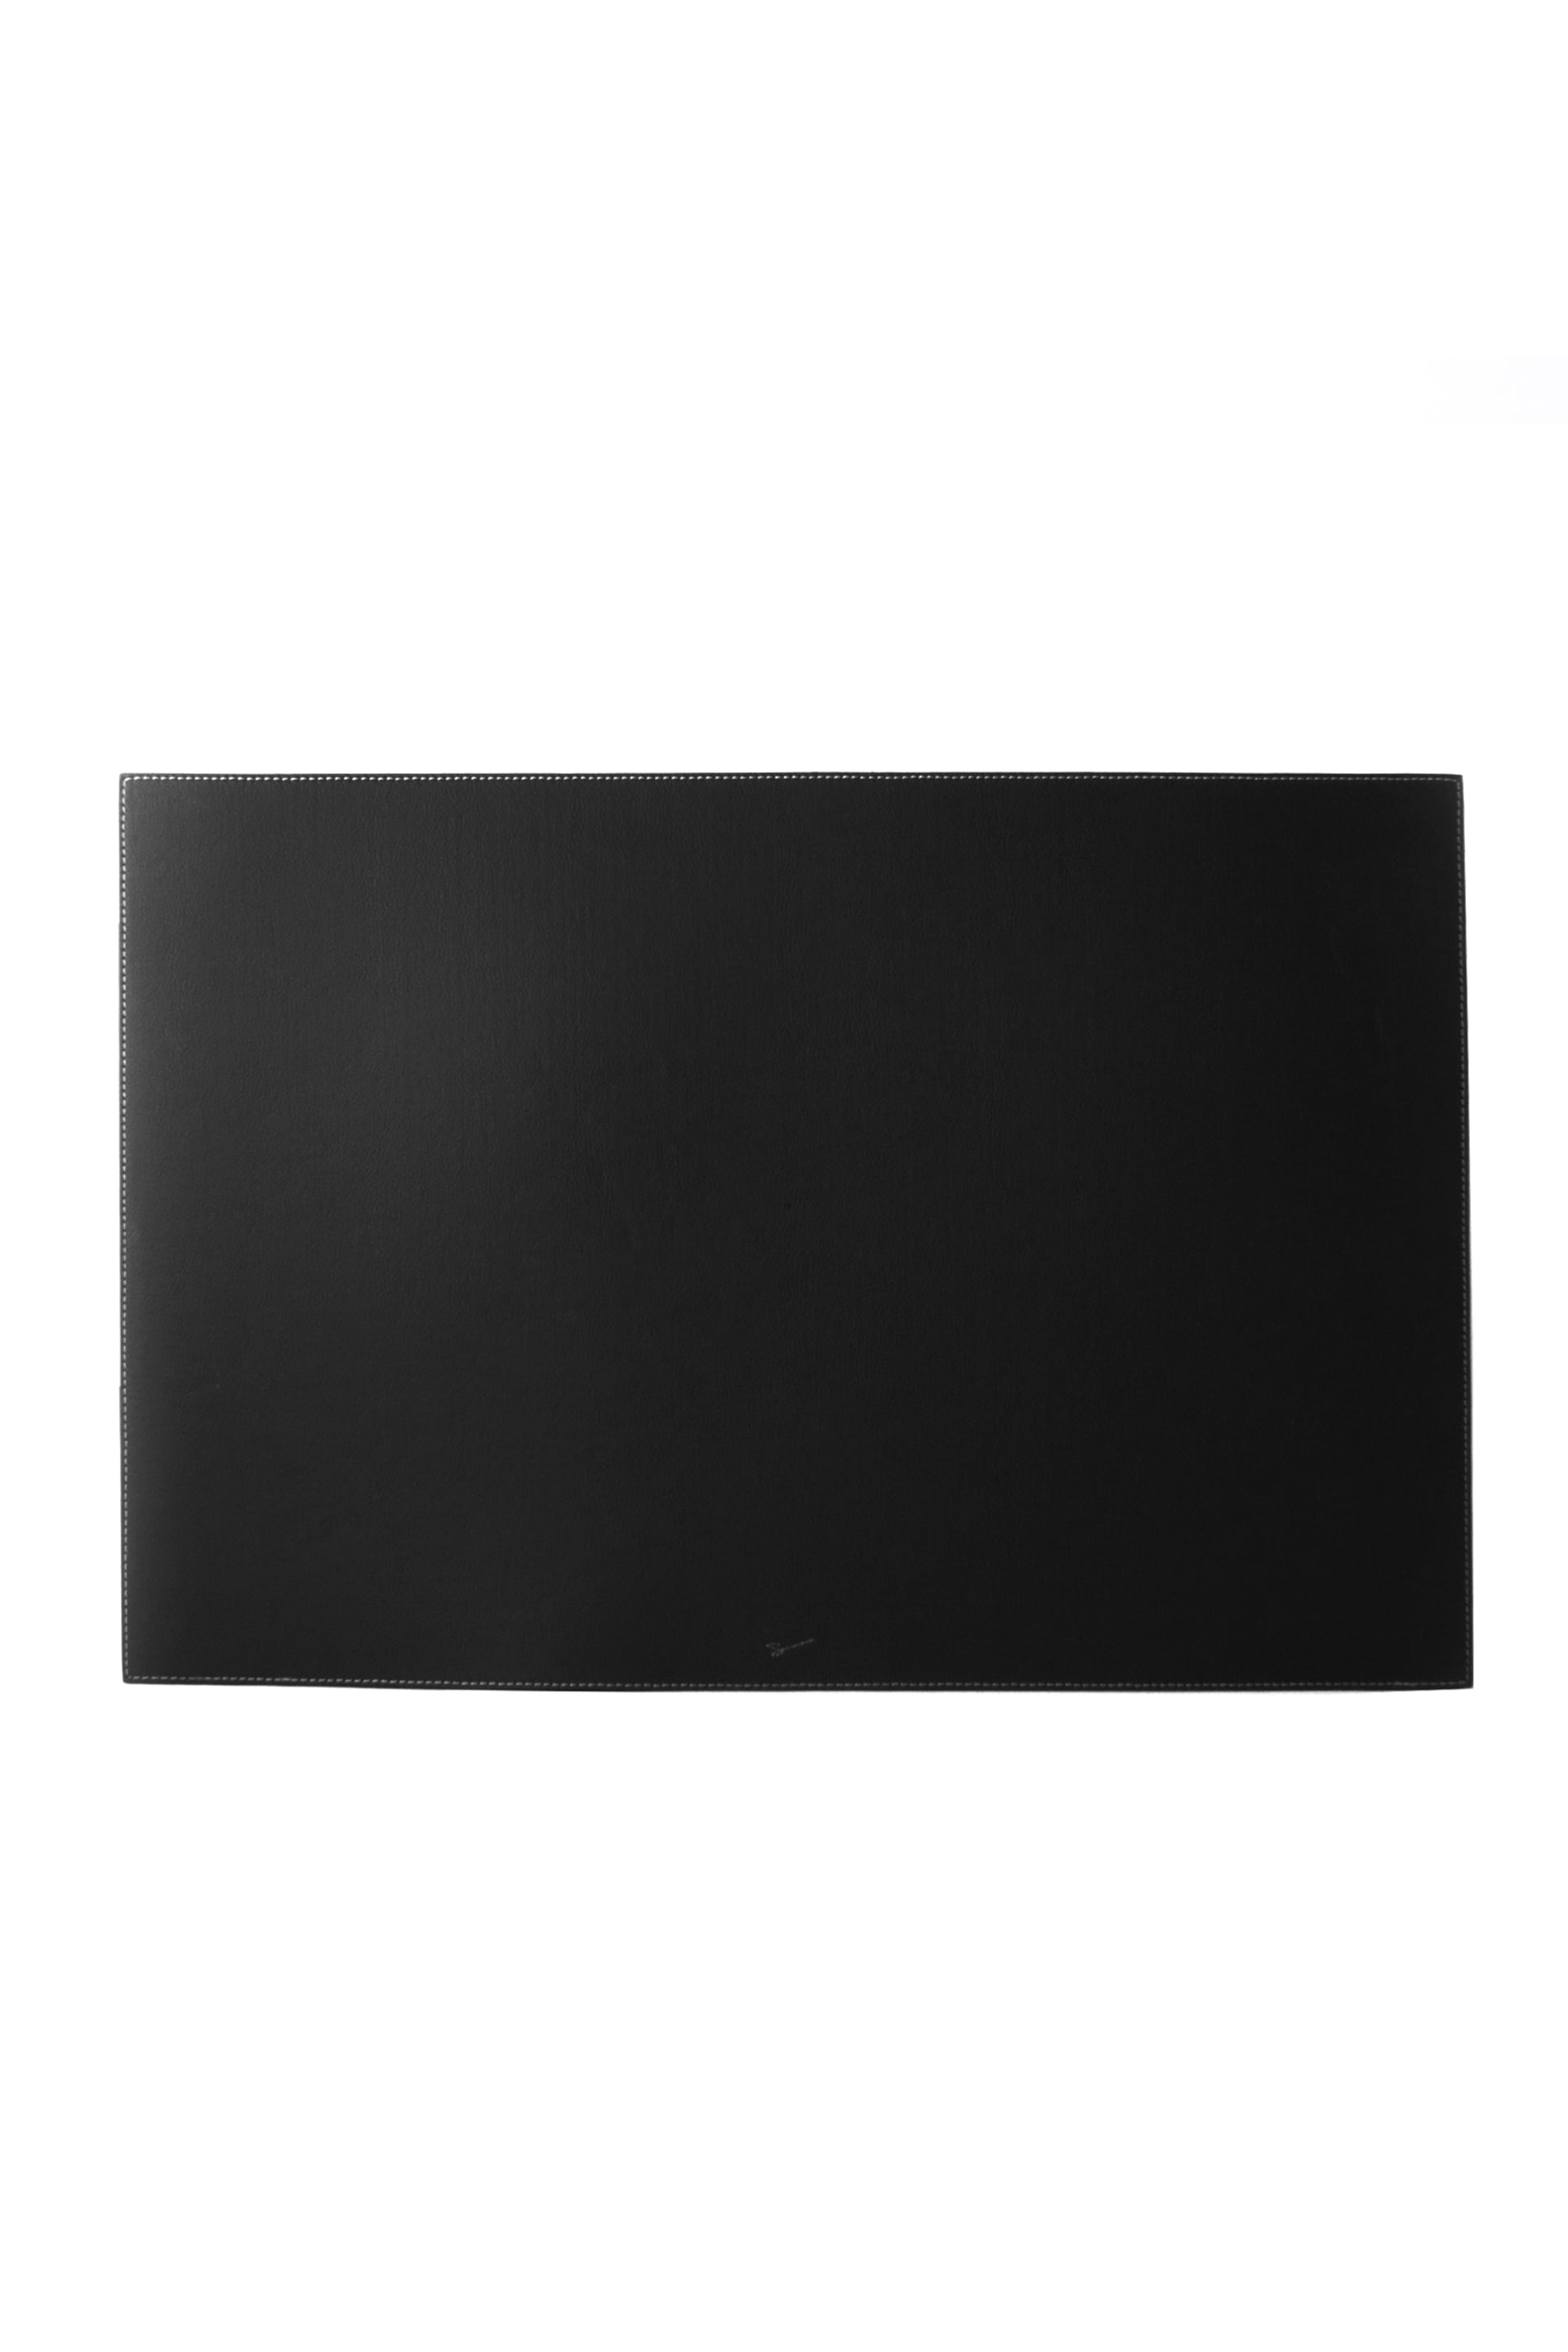 DESK PAD 22 Black